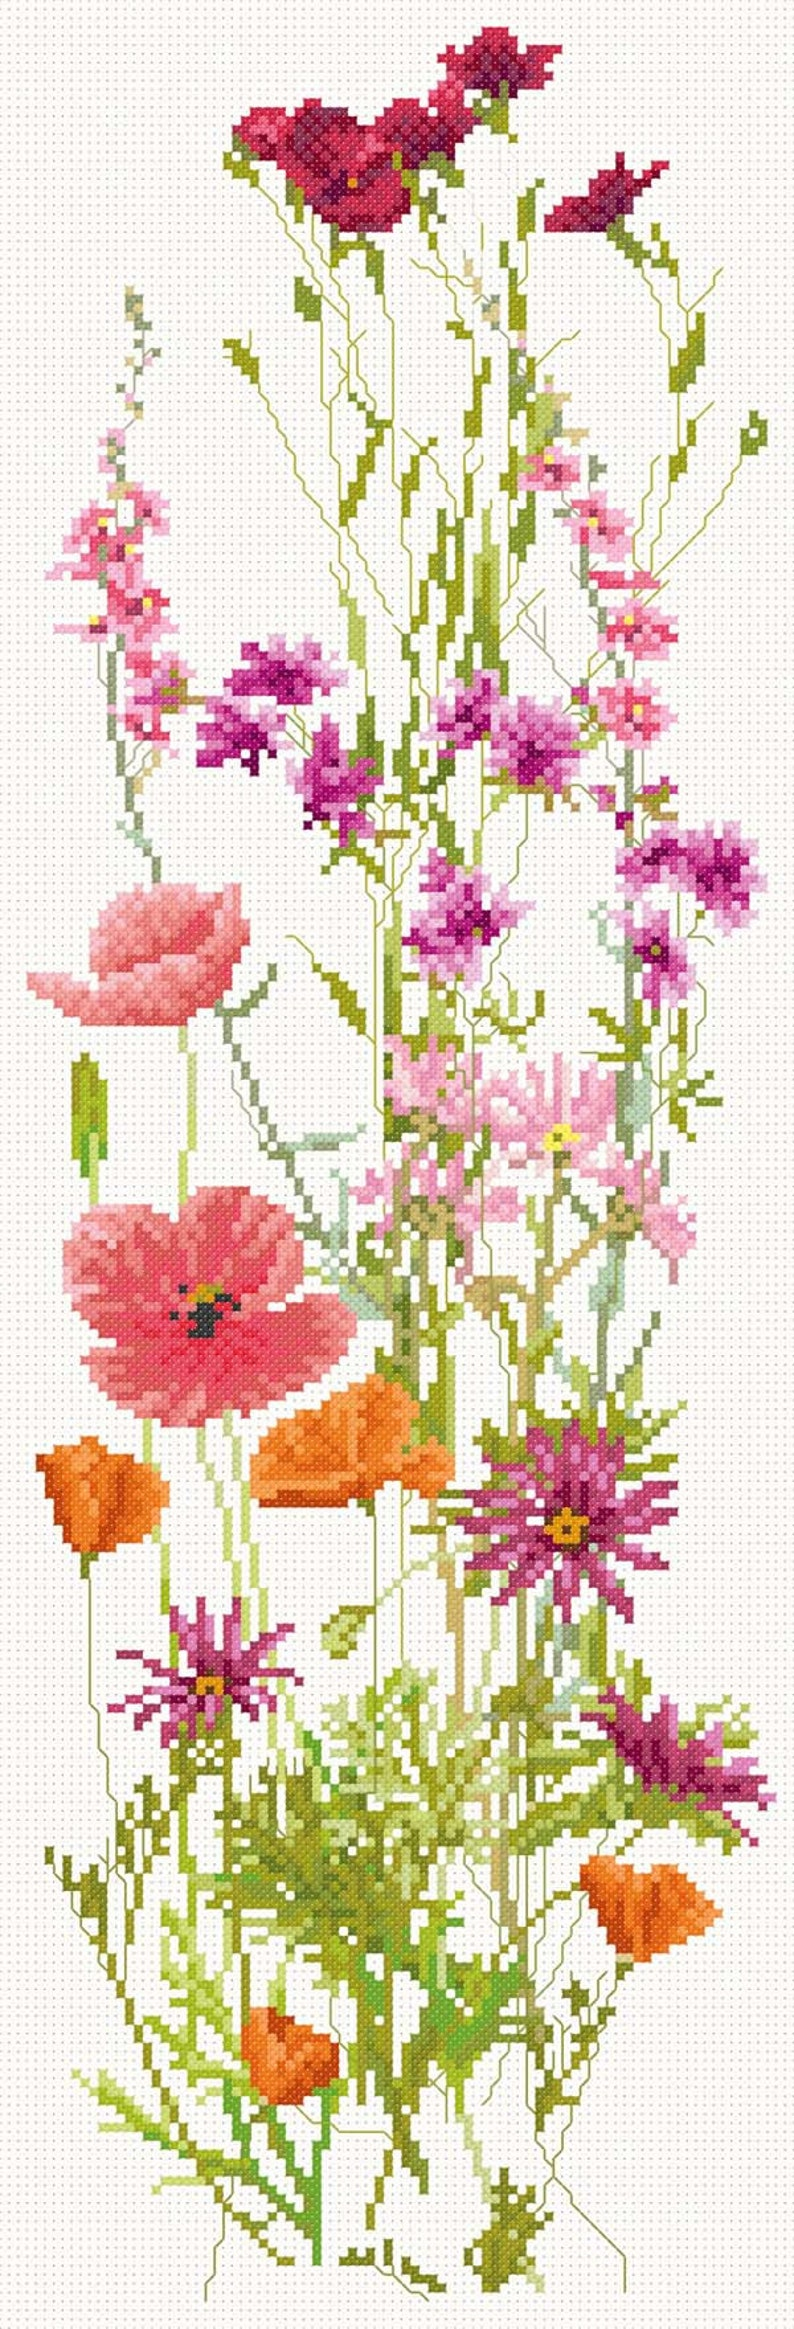 Cross Stitch design of red summer flowers  download image 0